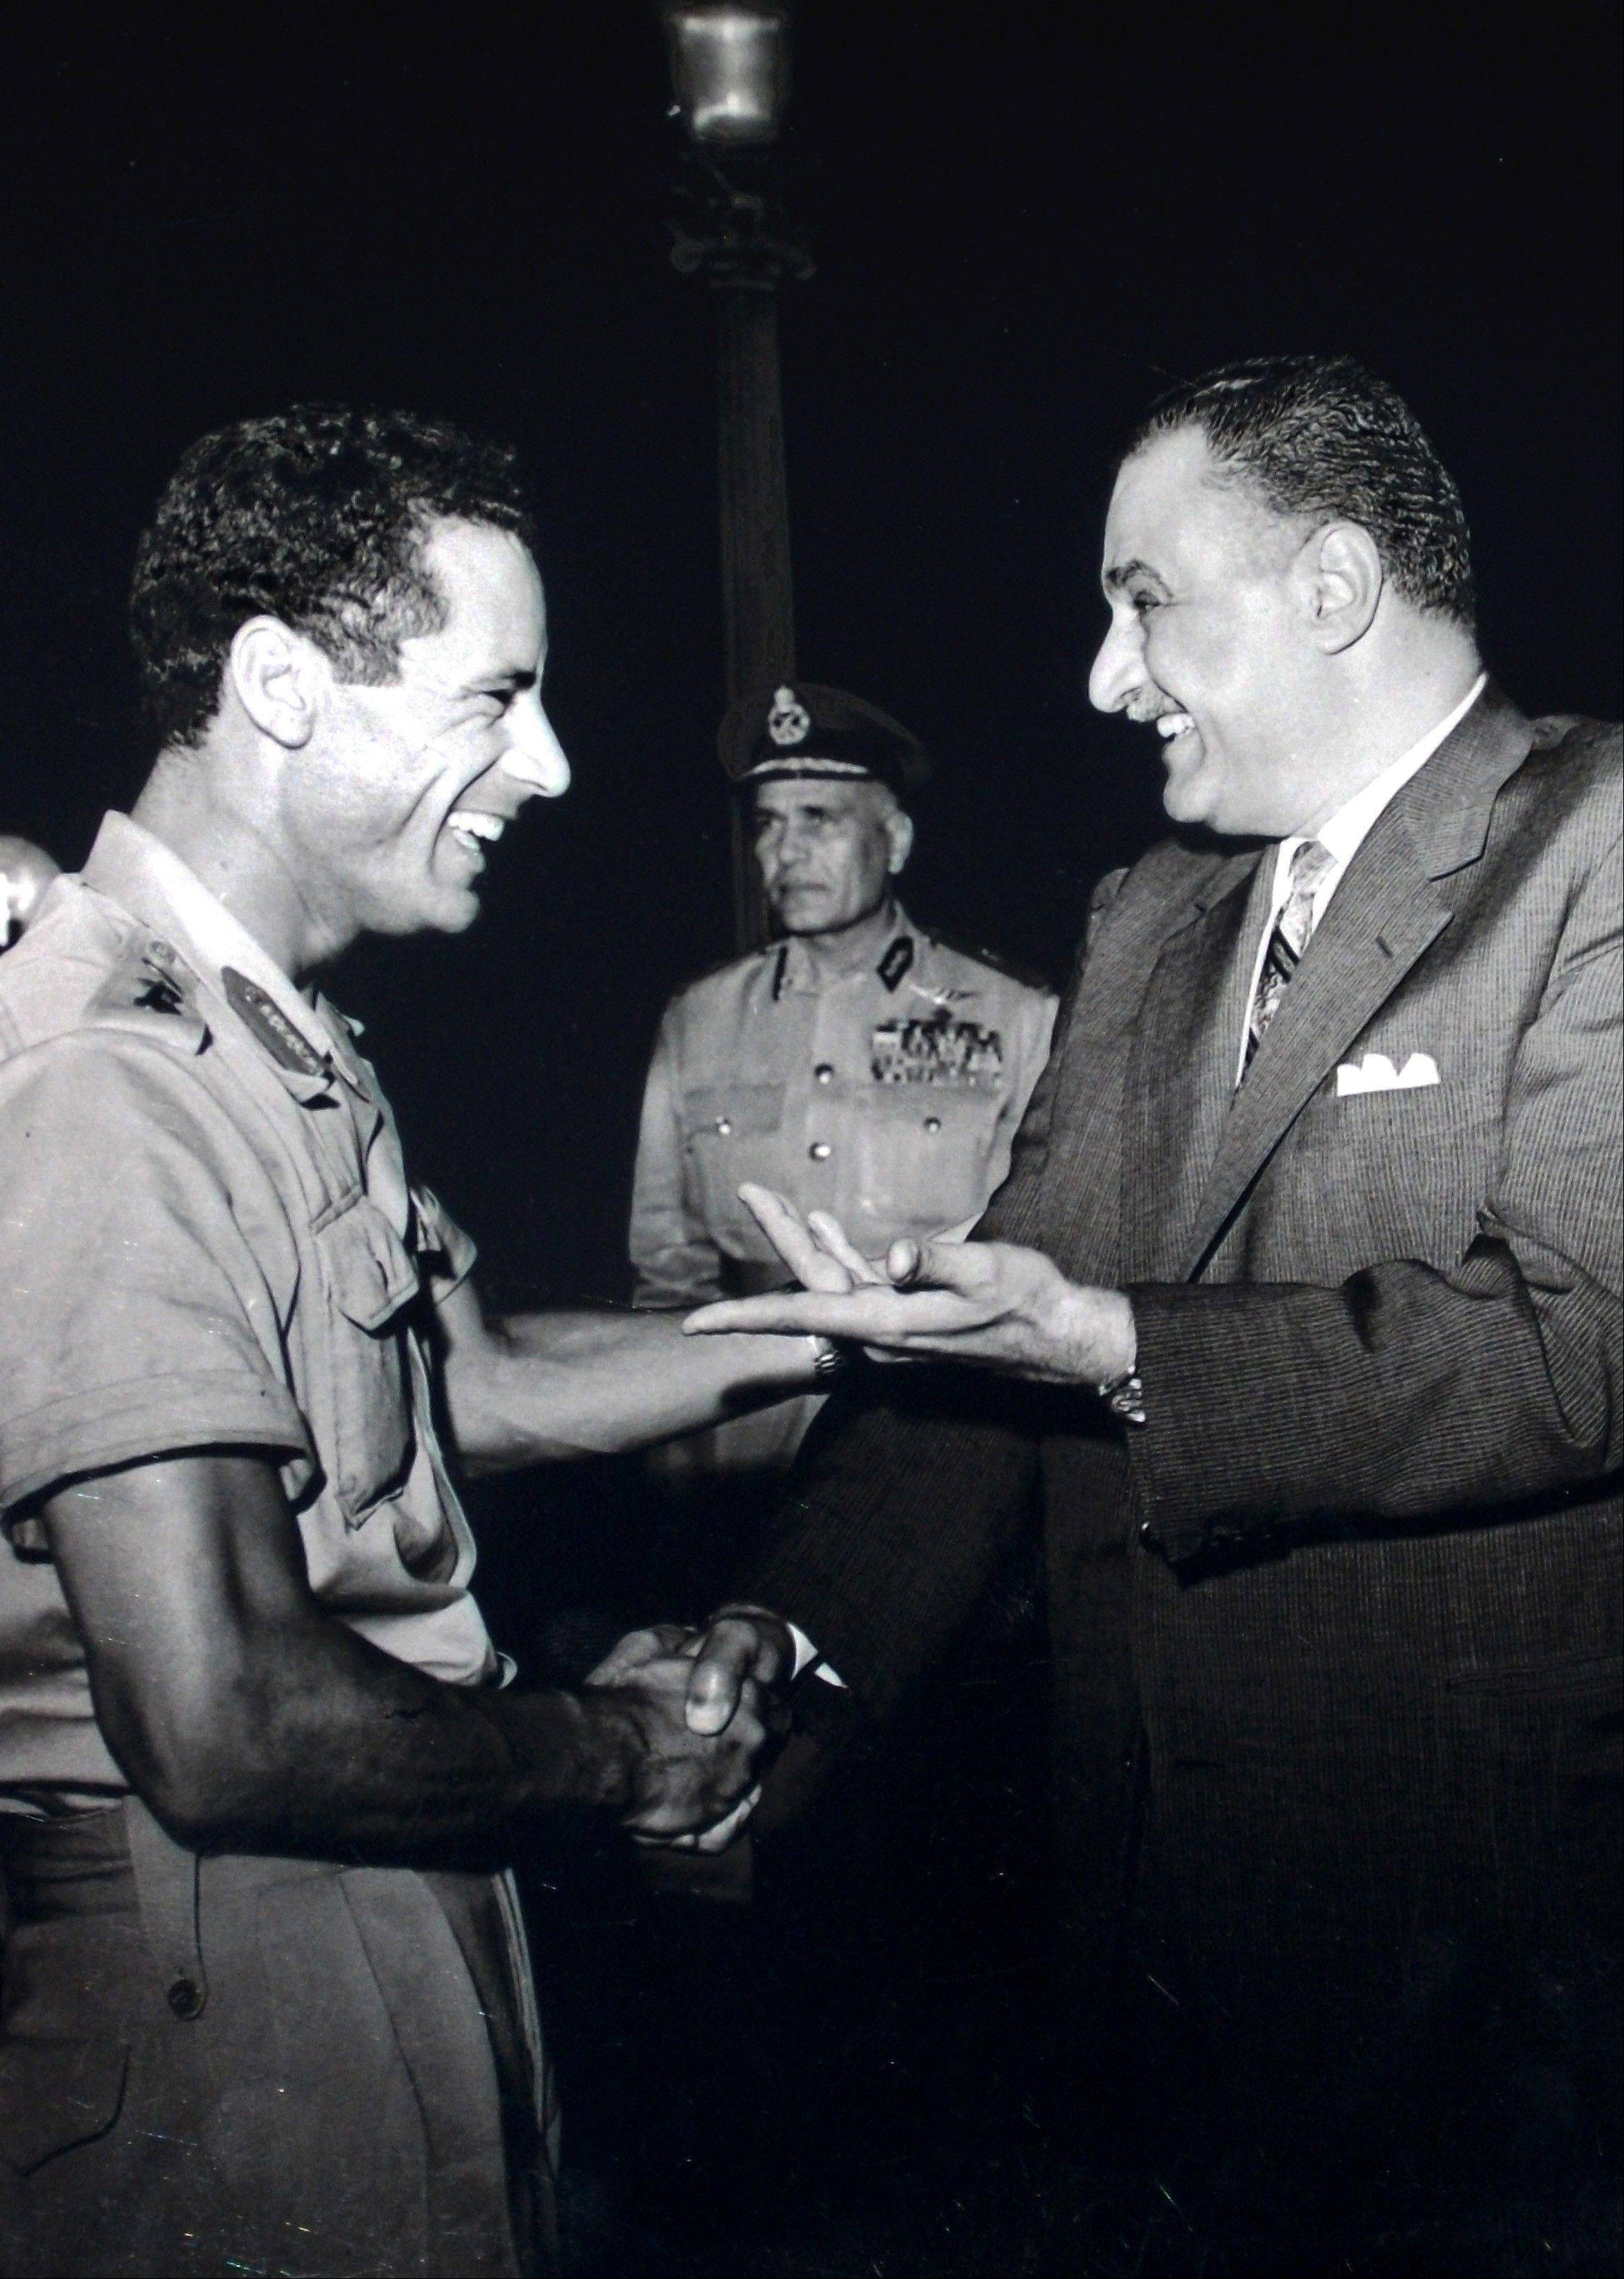 In this October 1969 file photo, Col. Moammar Gadhafi, left, appears with Egypt's Prime Minister Gamal Abdel Nasser, right, during his first official visit to Egypt after a military coup in Libya.